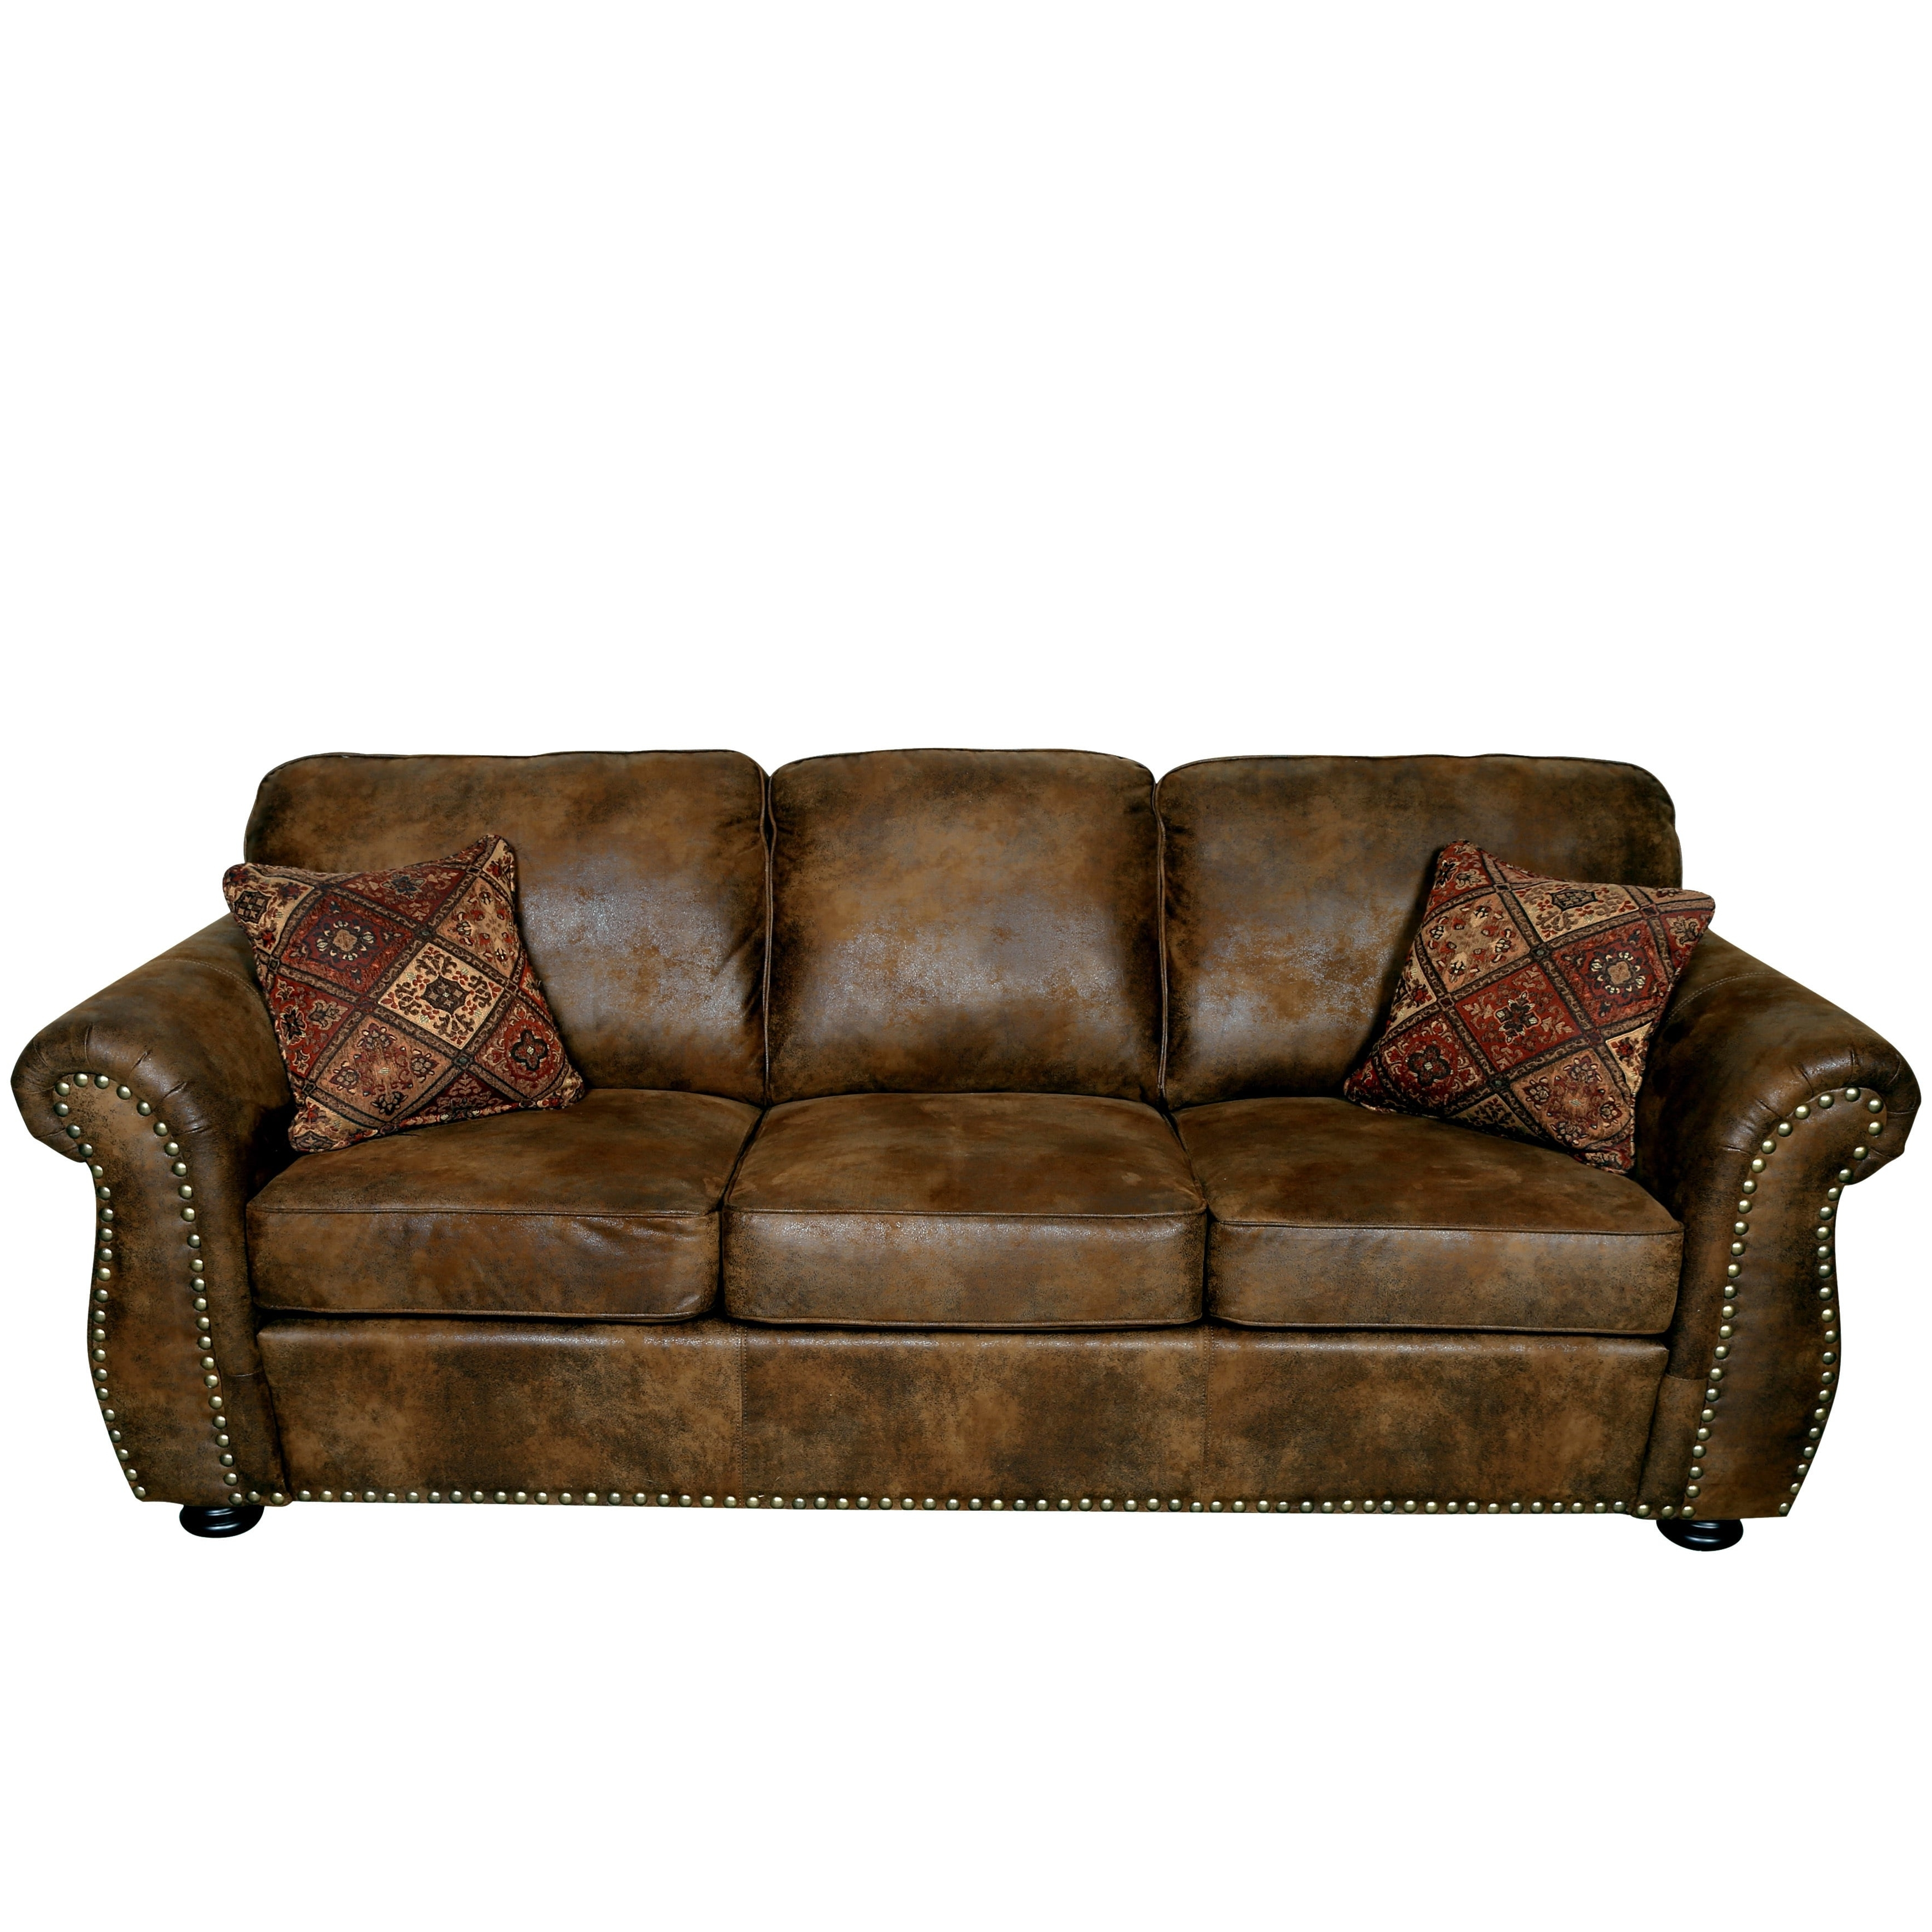 Most Current Faux Suede Sofas Throughout Porter Elk River Brown Microfiber Faux Suede Leather Sofa With  (View 13 of 20)